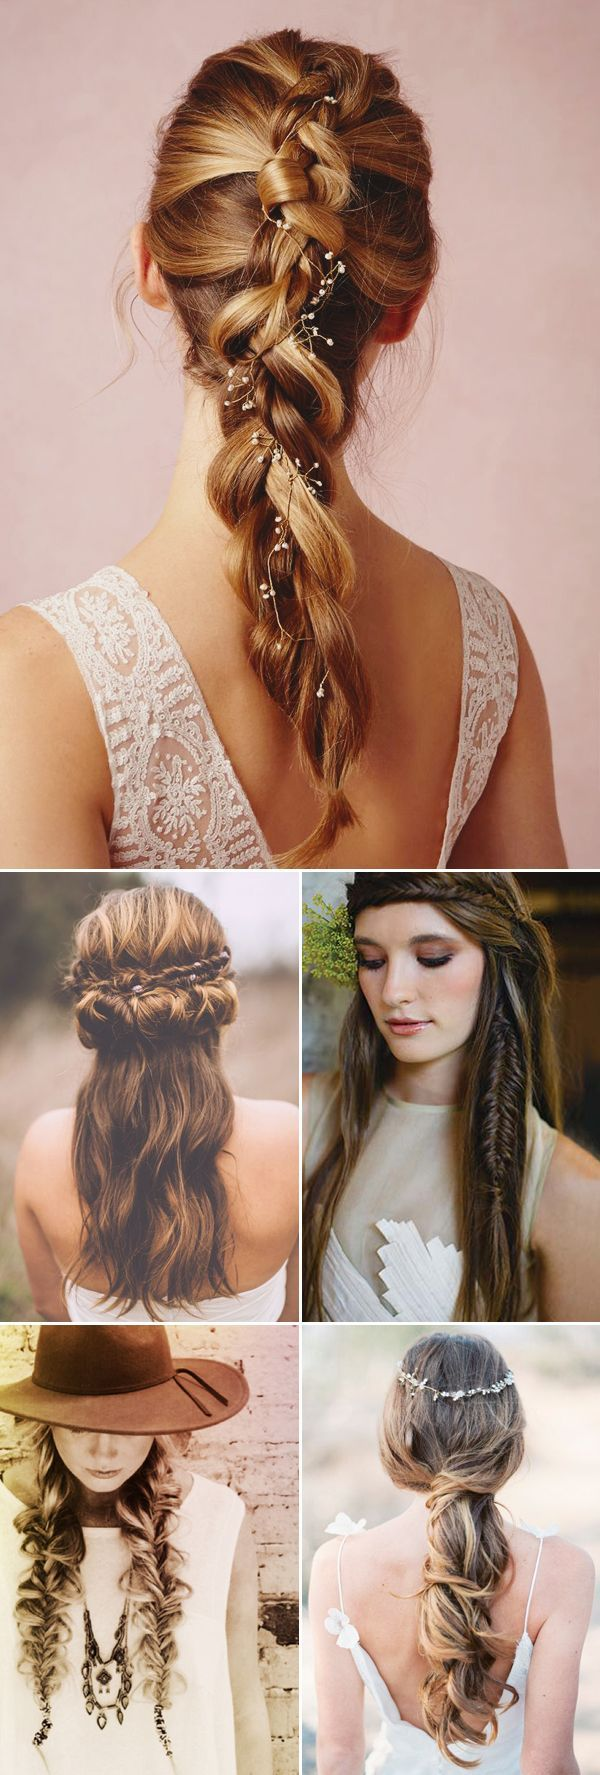 cool hair styles for with hair 26 boho hairstyles with braids bun updos amp other great 8471